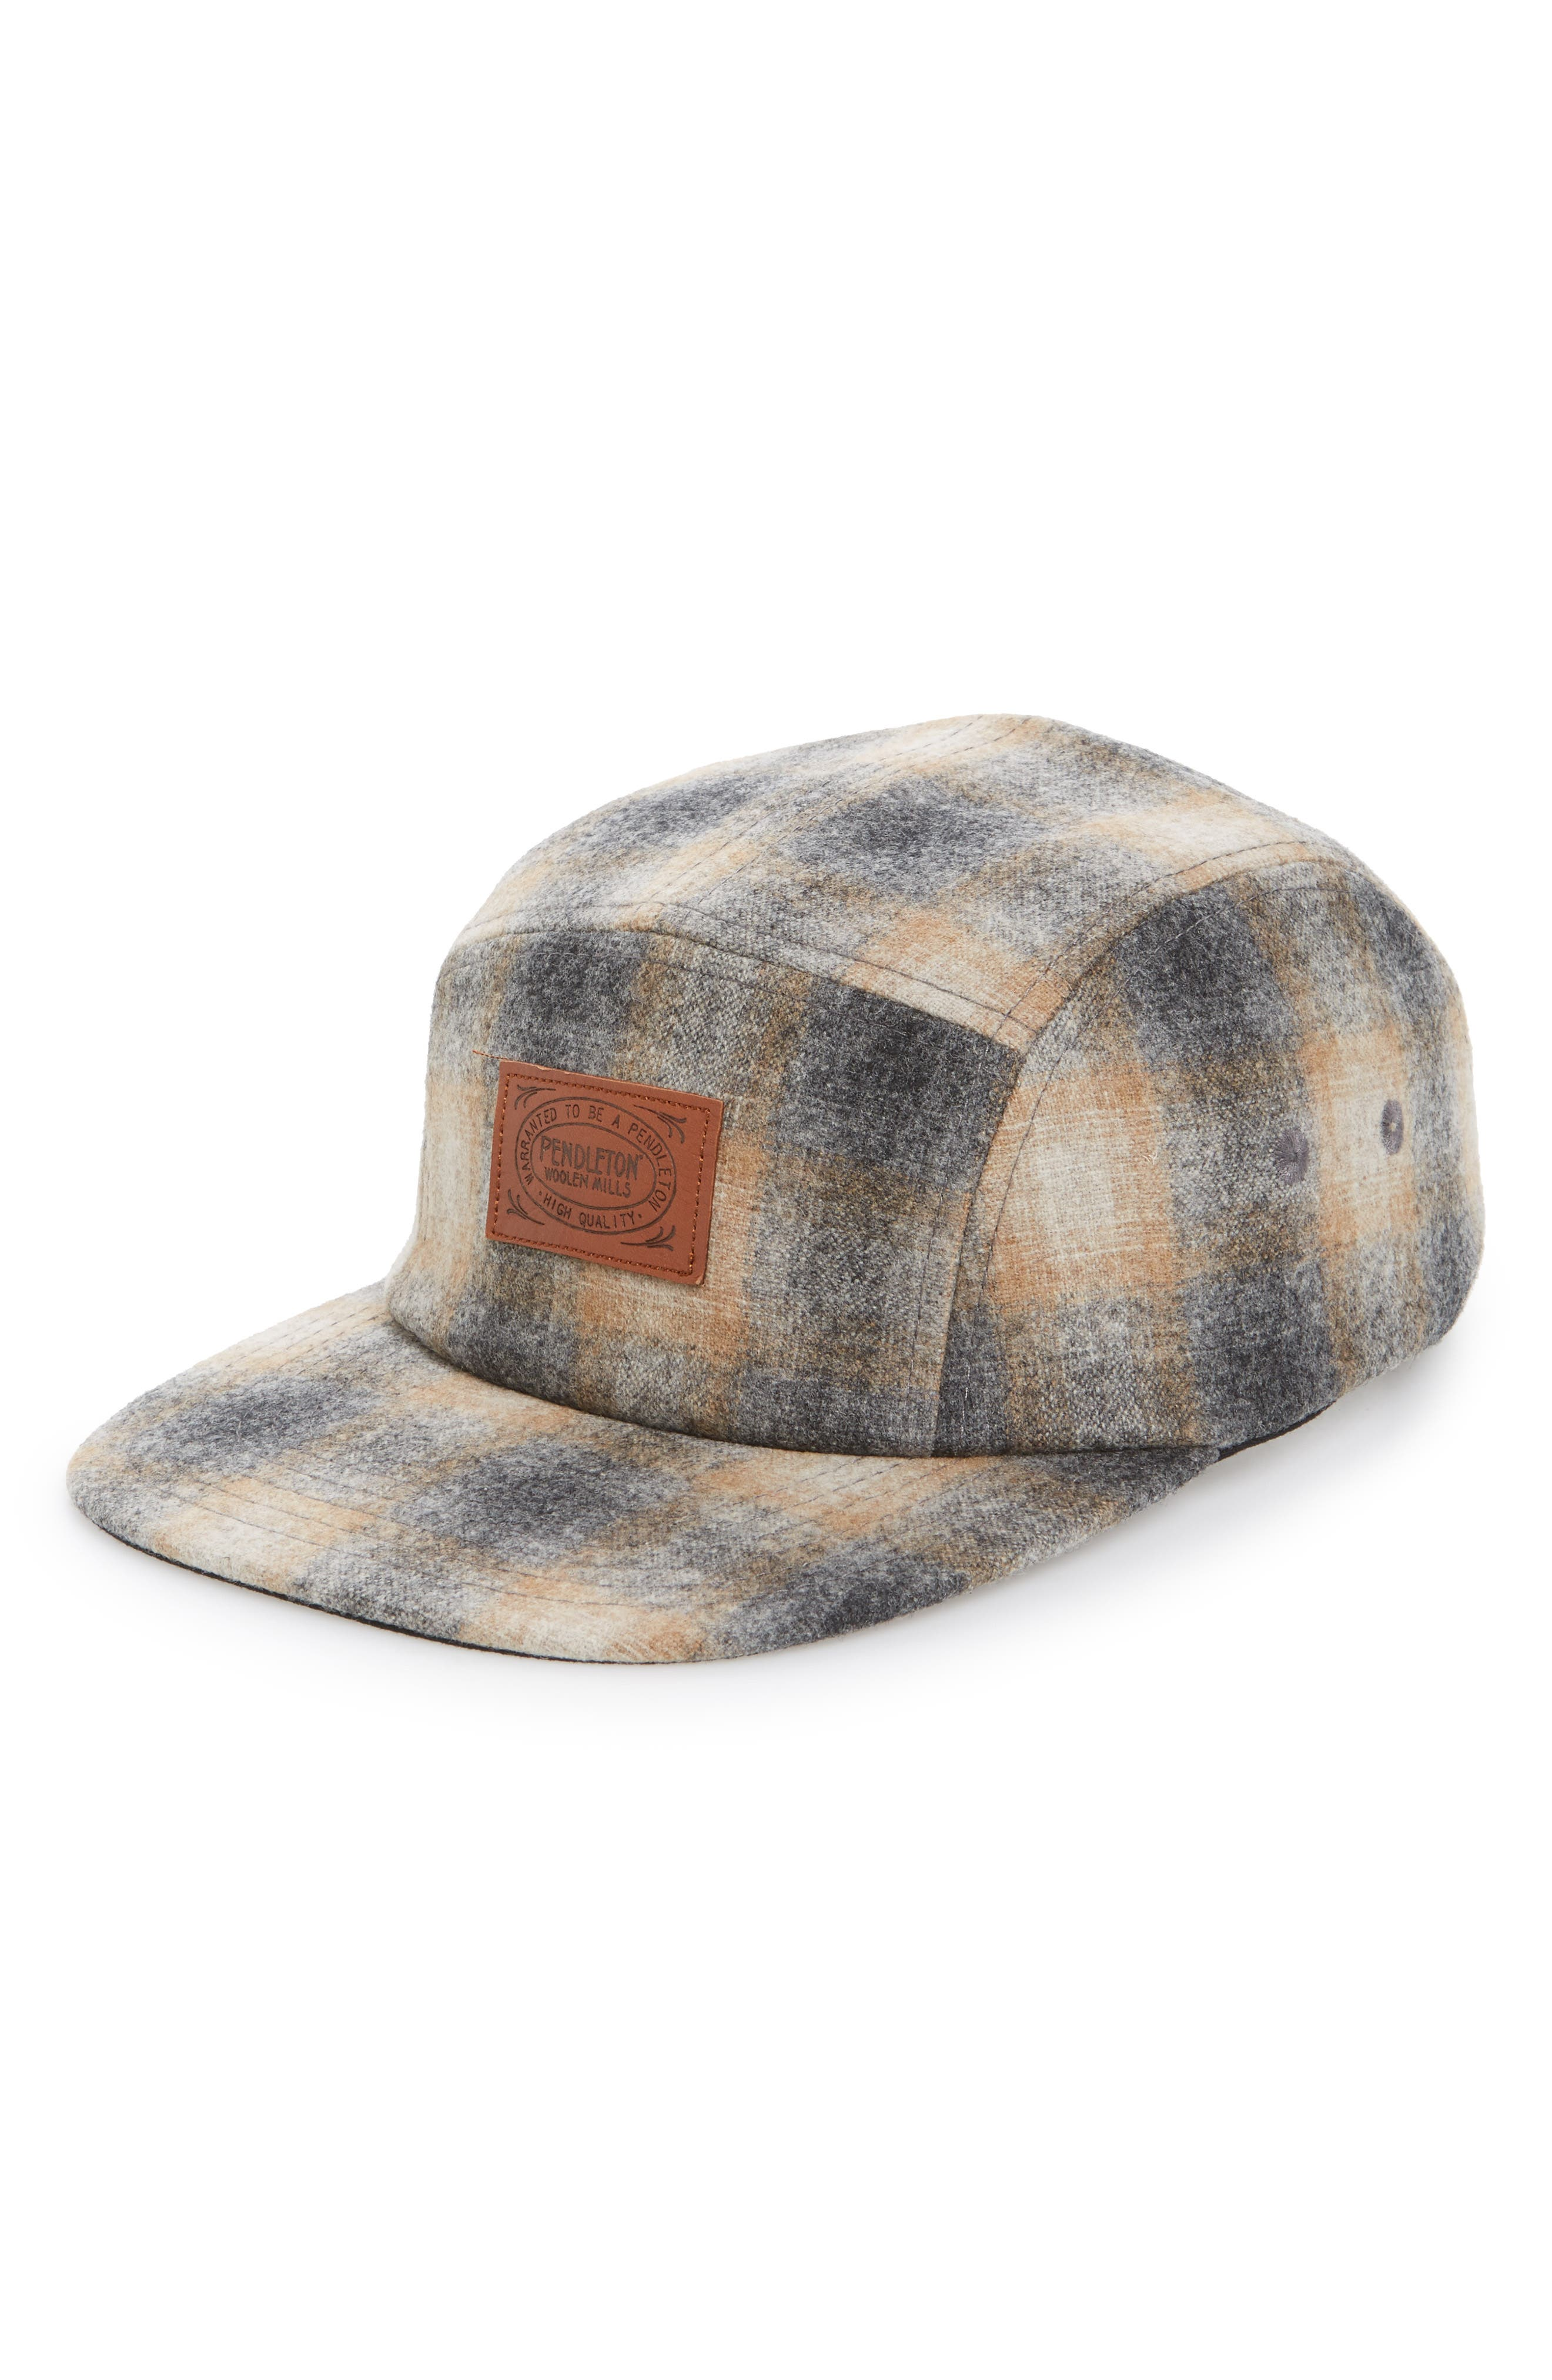 Five-Panel Camp Hat,                         Main,                         color, Oxford Grey/ Tan Ombre